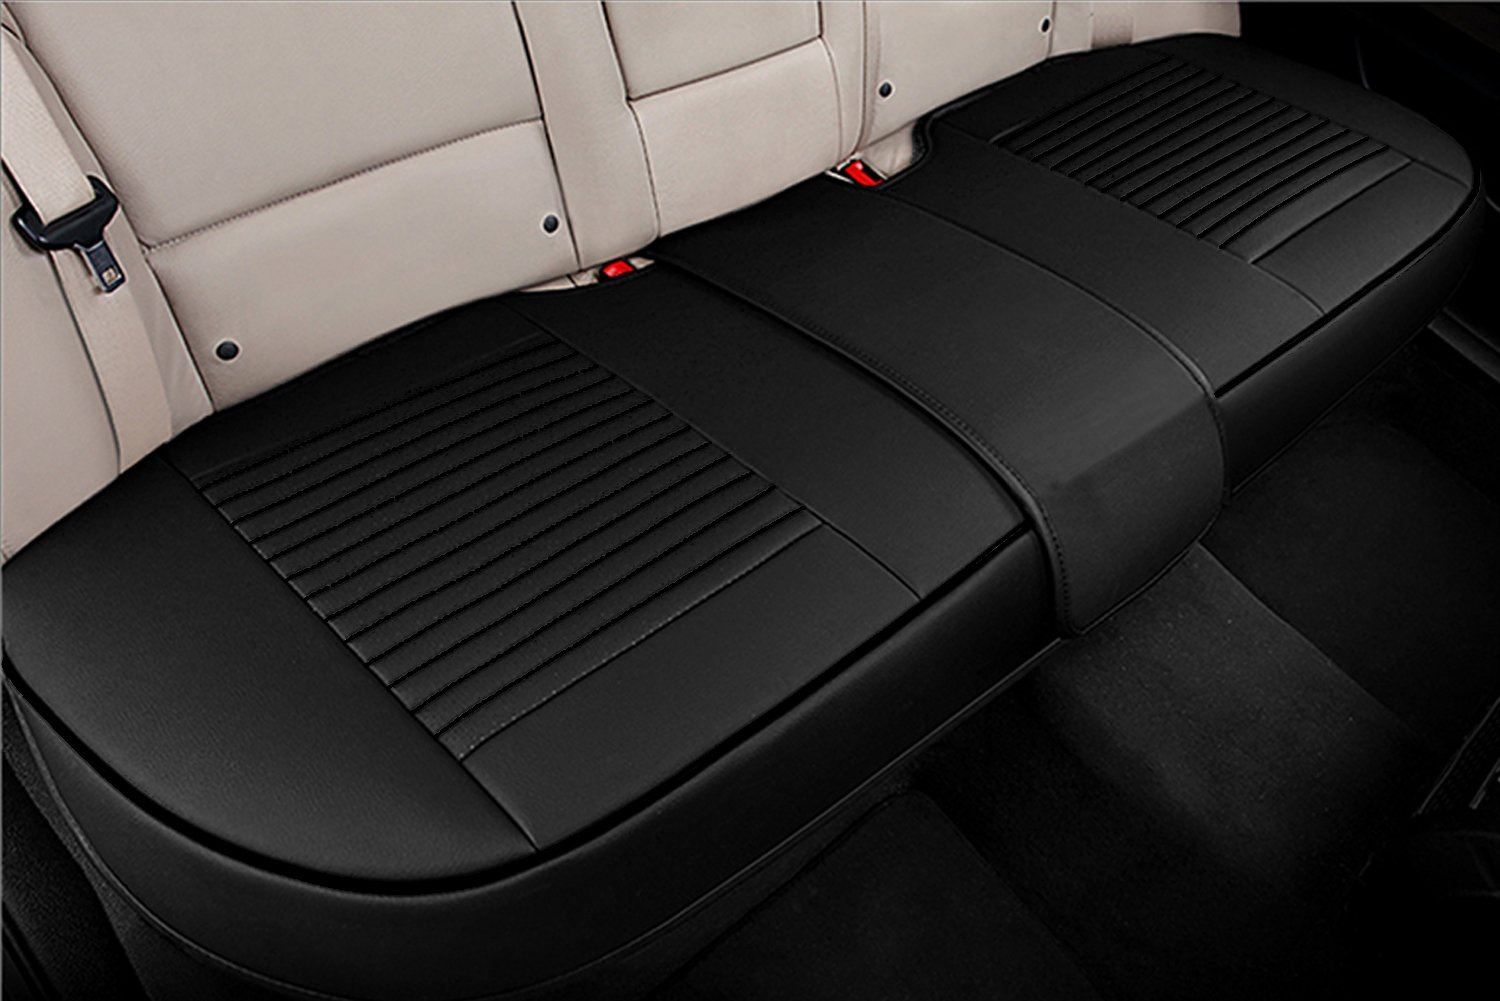 e974a9ce94 Best Rated in Seat Covers   Helpful Customer Reviews - Amazon.com